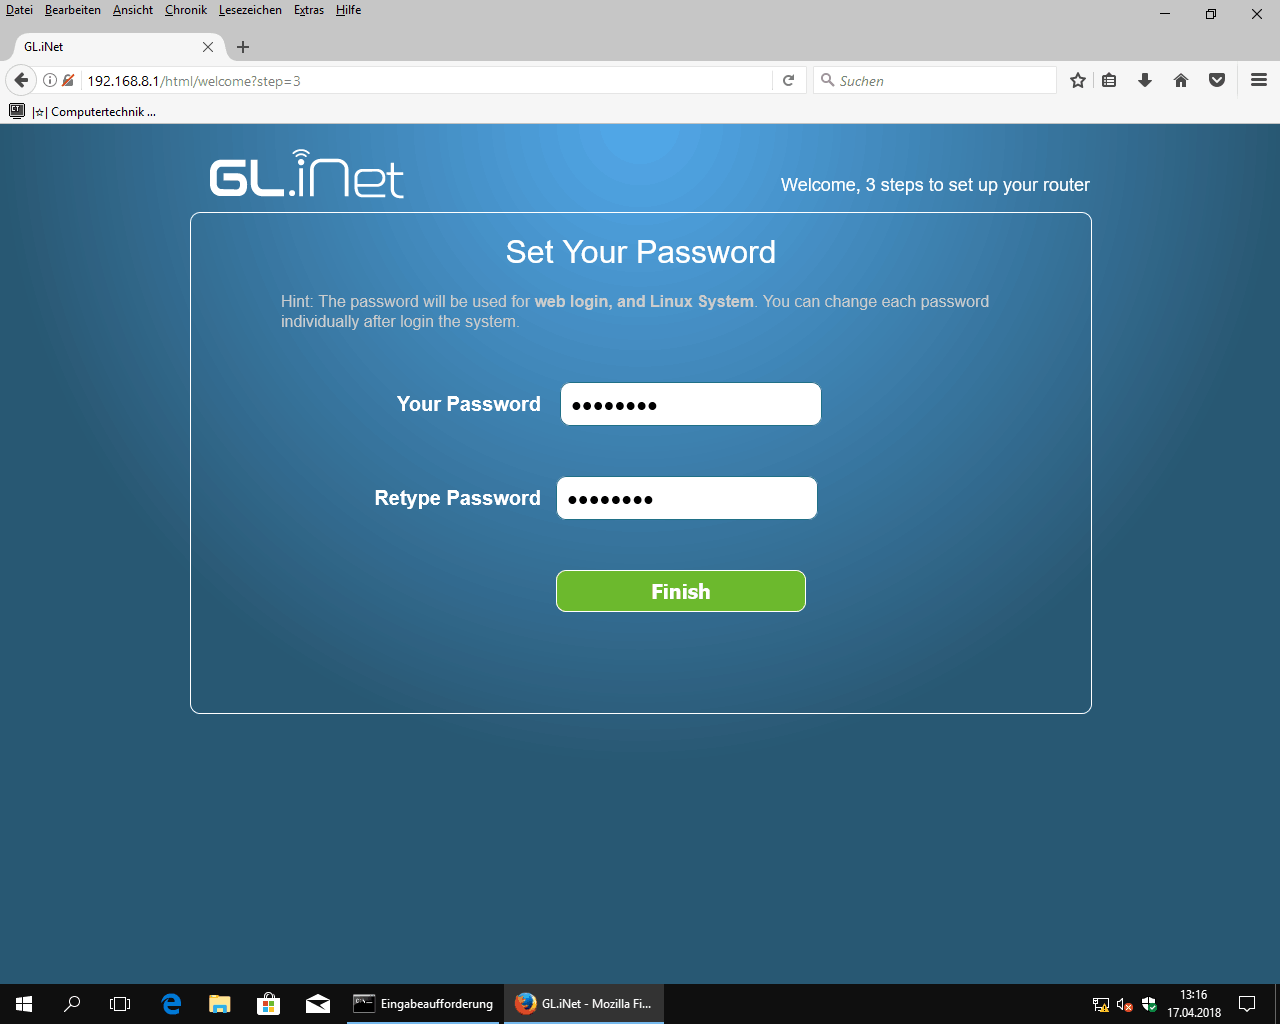 GL.iNet Router Webconfig set router/root/ssh password